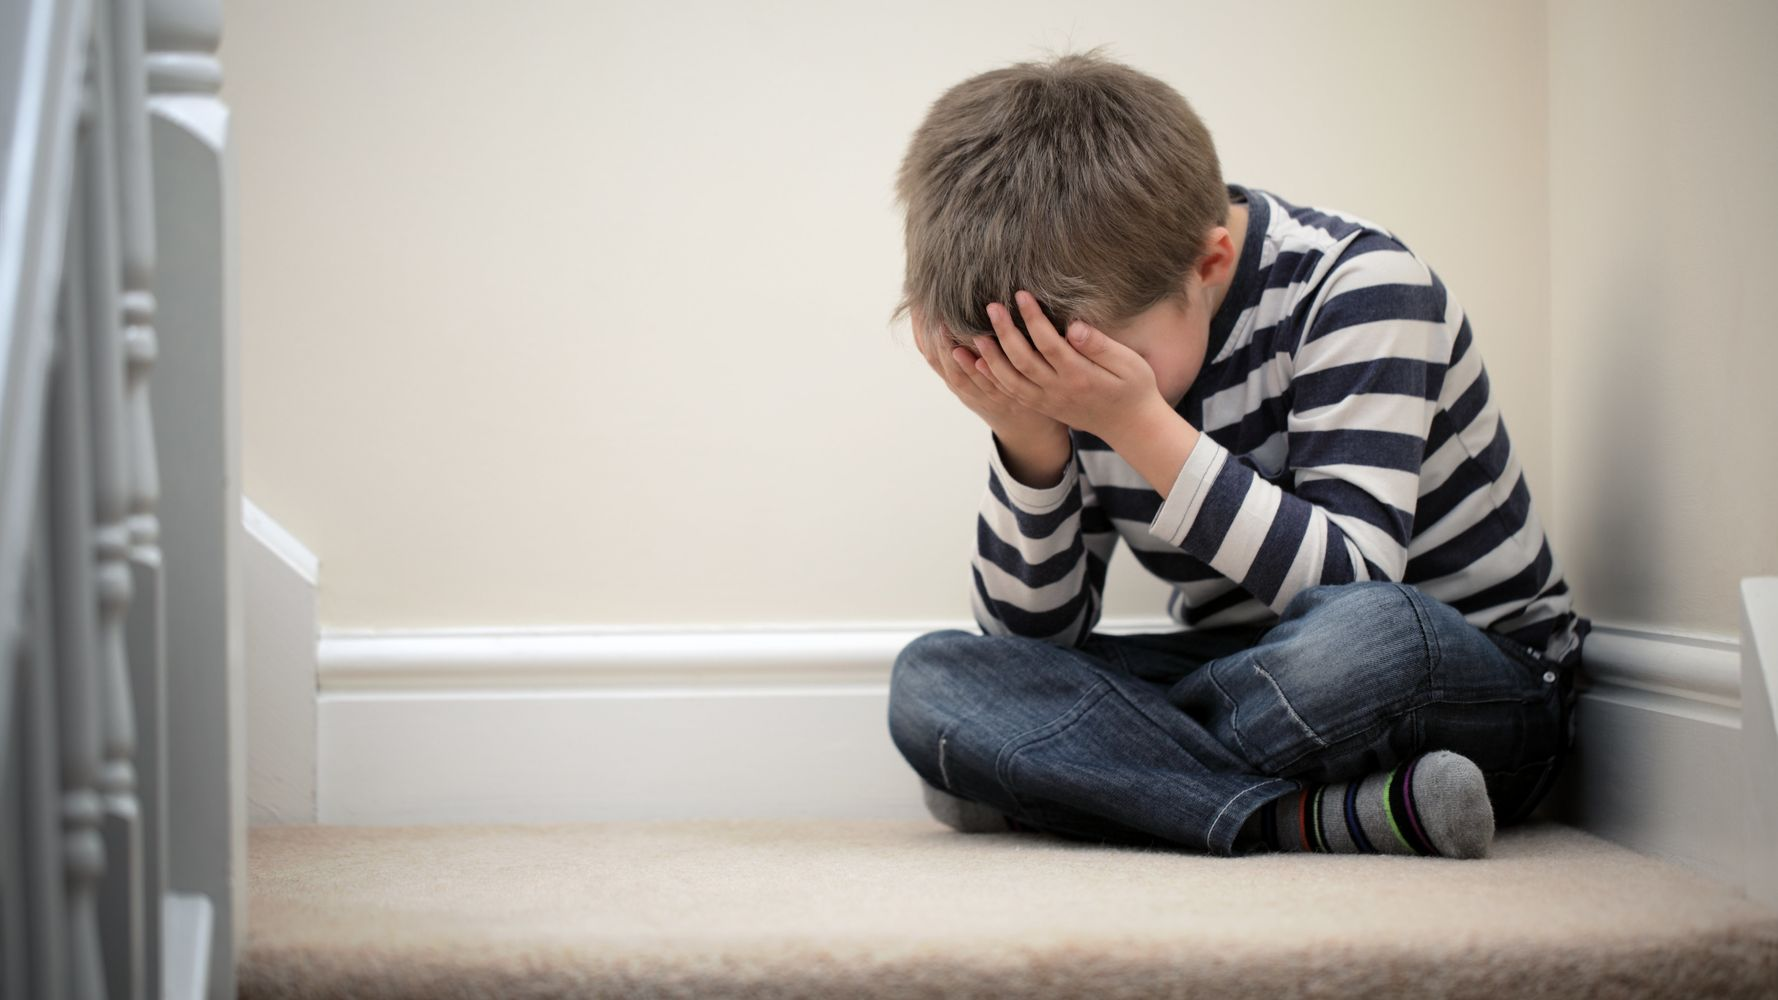 How To Help Boys Deal With Anger